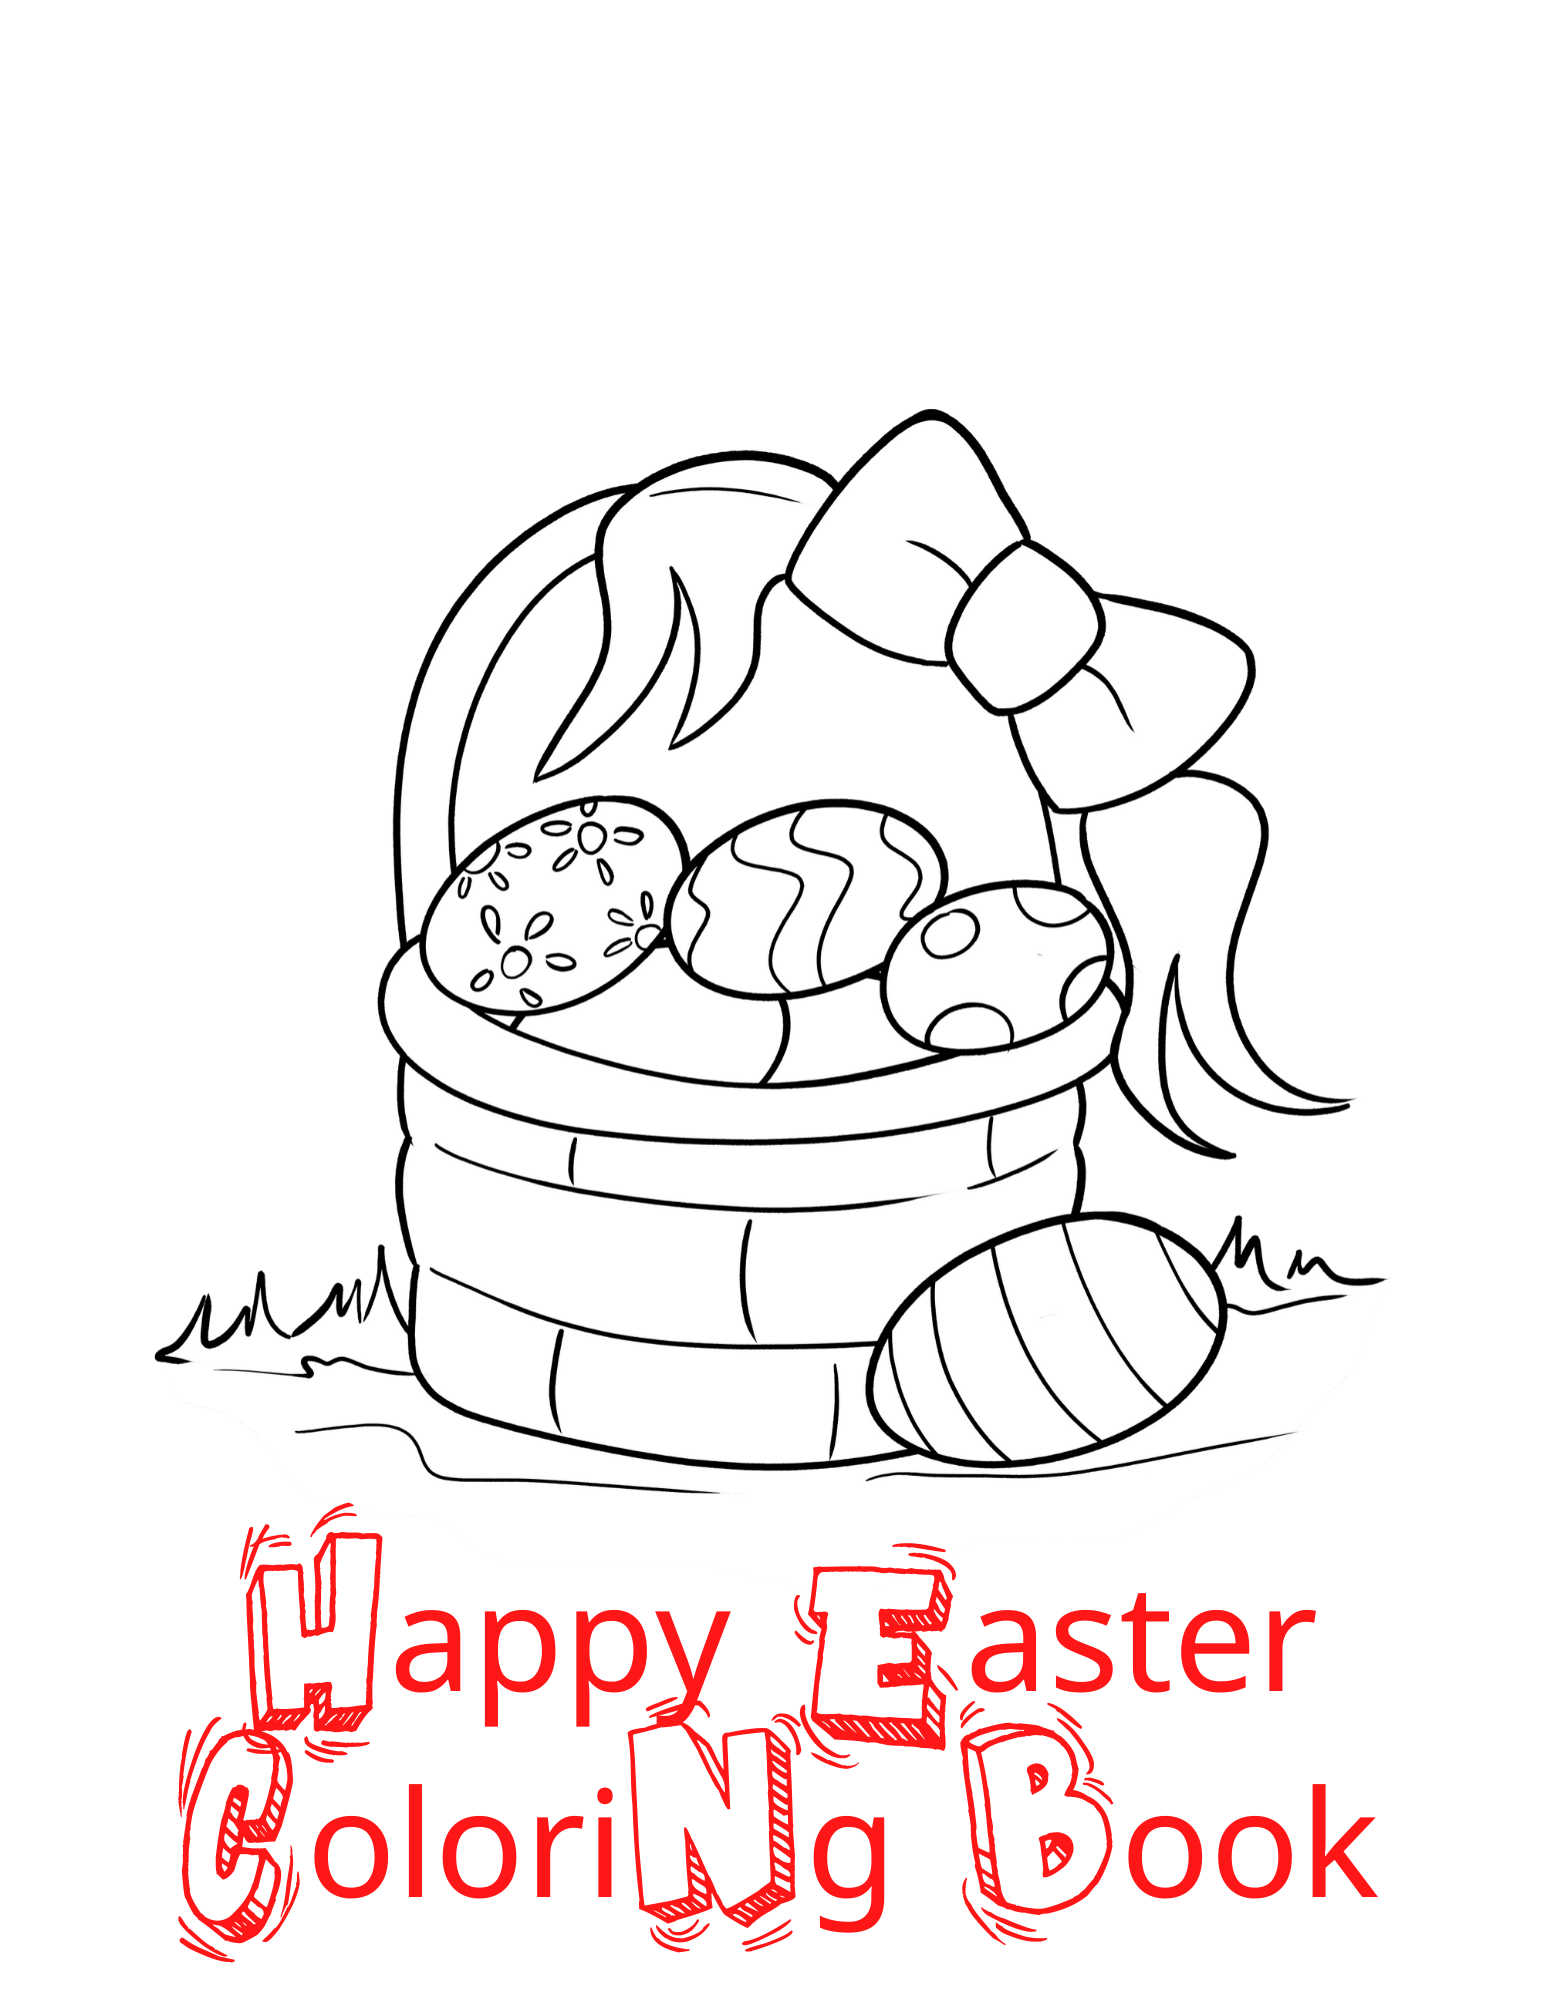 Easter Bunny Coloring Page For Kids Ages 1 4 Easter Bunny Eggs Christ Boys Girls And More Eastercoloringbook Eastergiftforkids In 2020